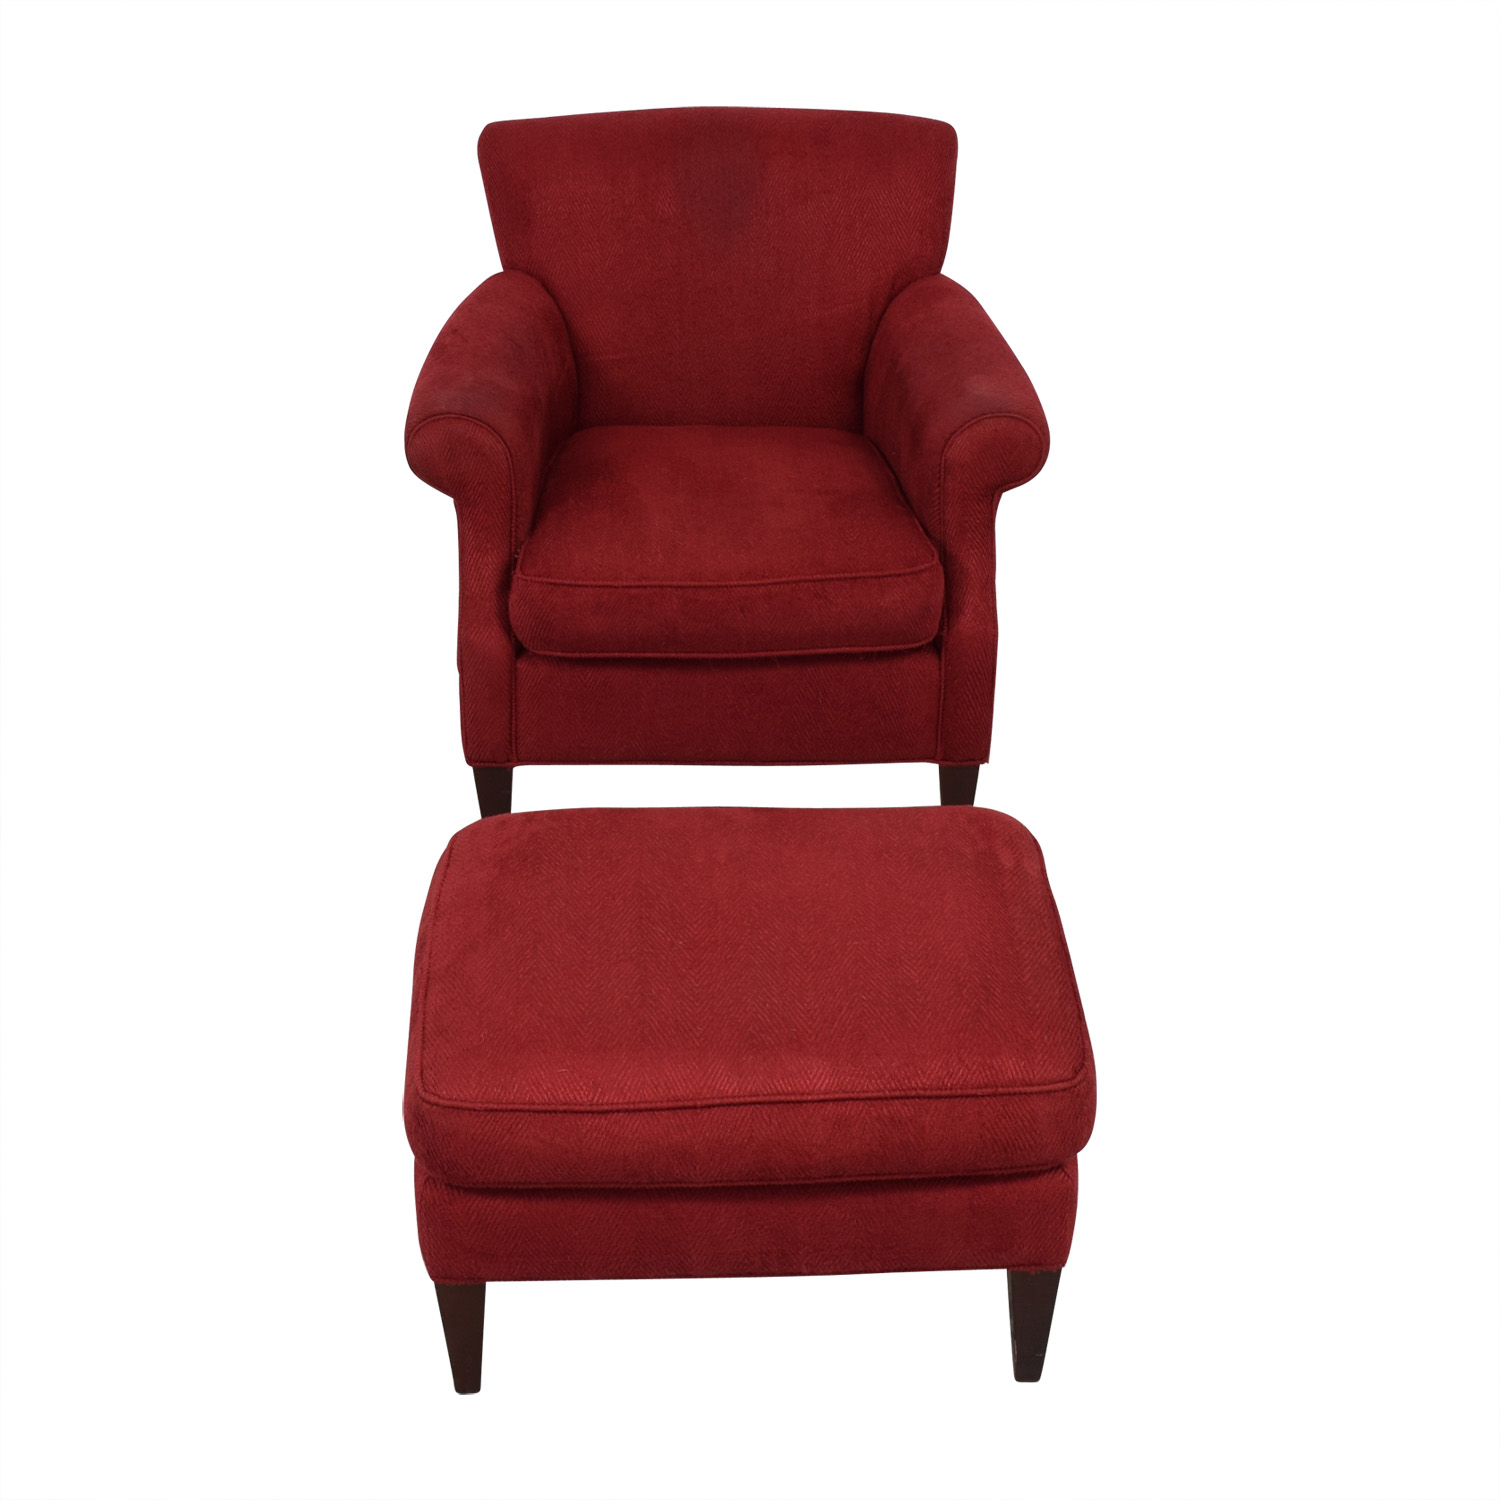 Miraculous 57 Off Crate Barrel Crate Barrel Red Roll Arm Accent Chair And Ottoman Chairs Unemploymentrelief Wooden Chair Designs For Living Room Unemploymentrelieforg